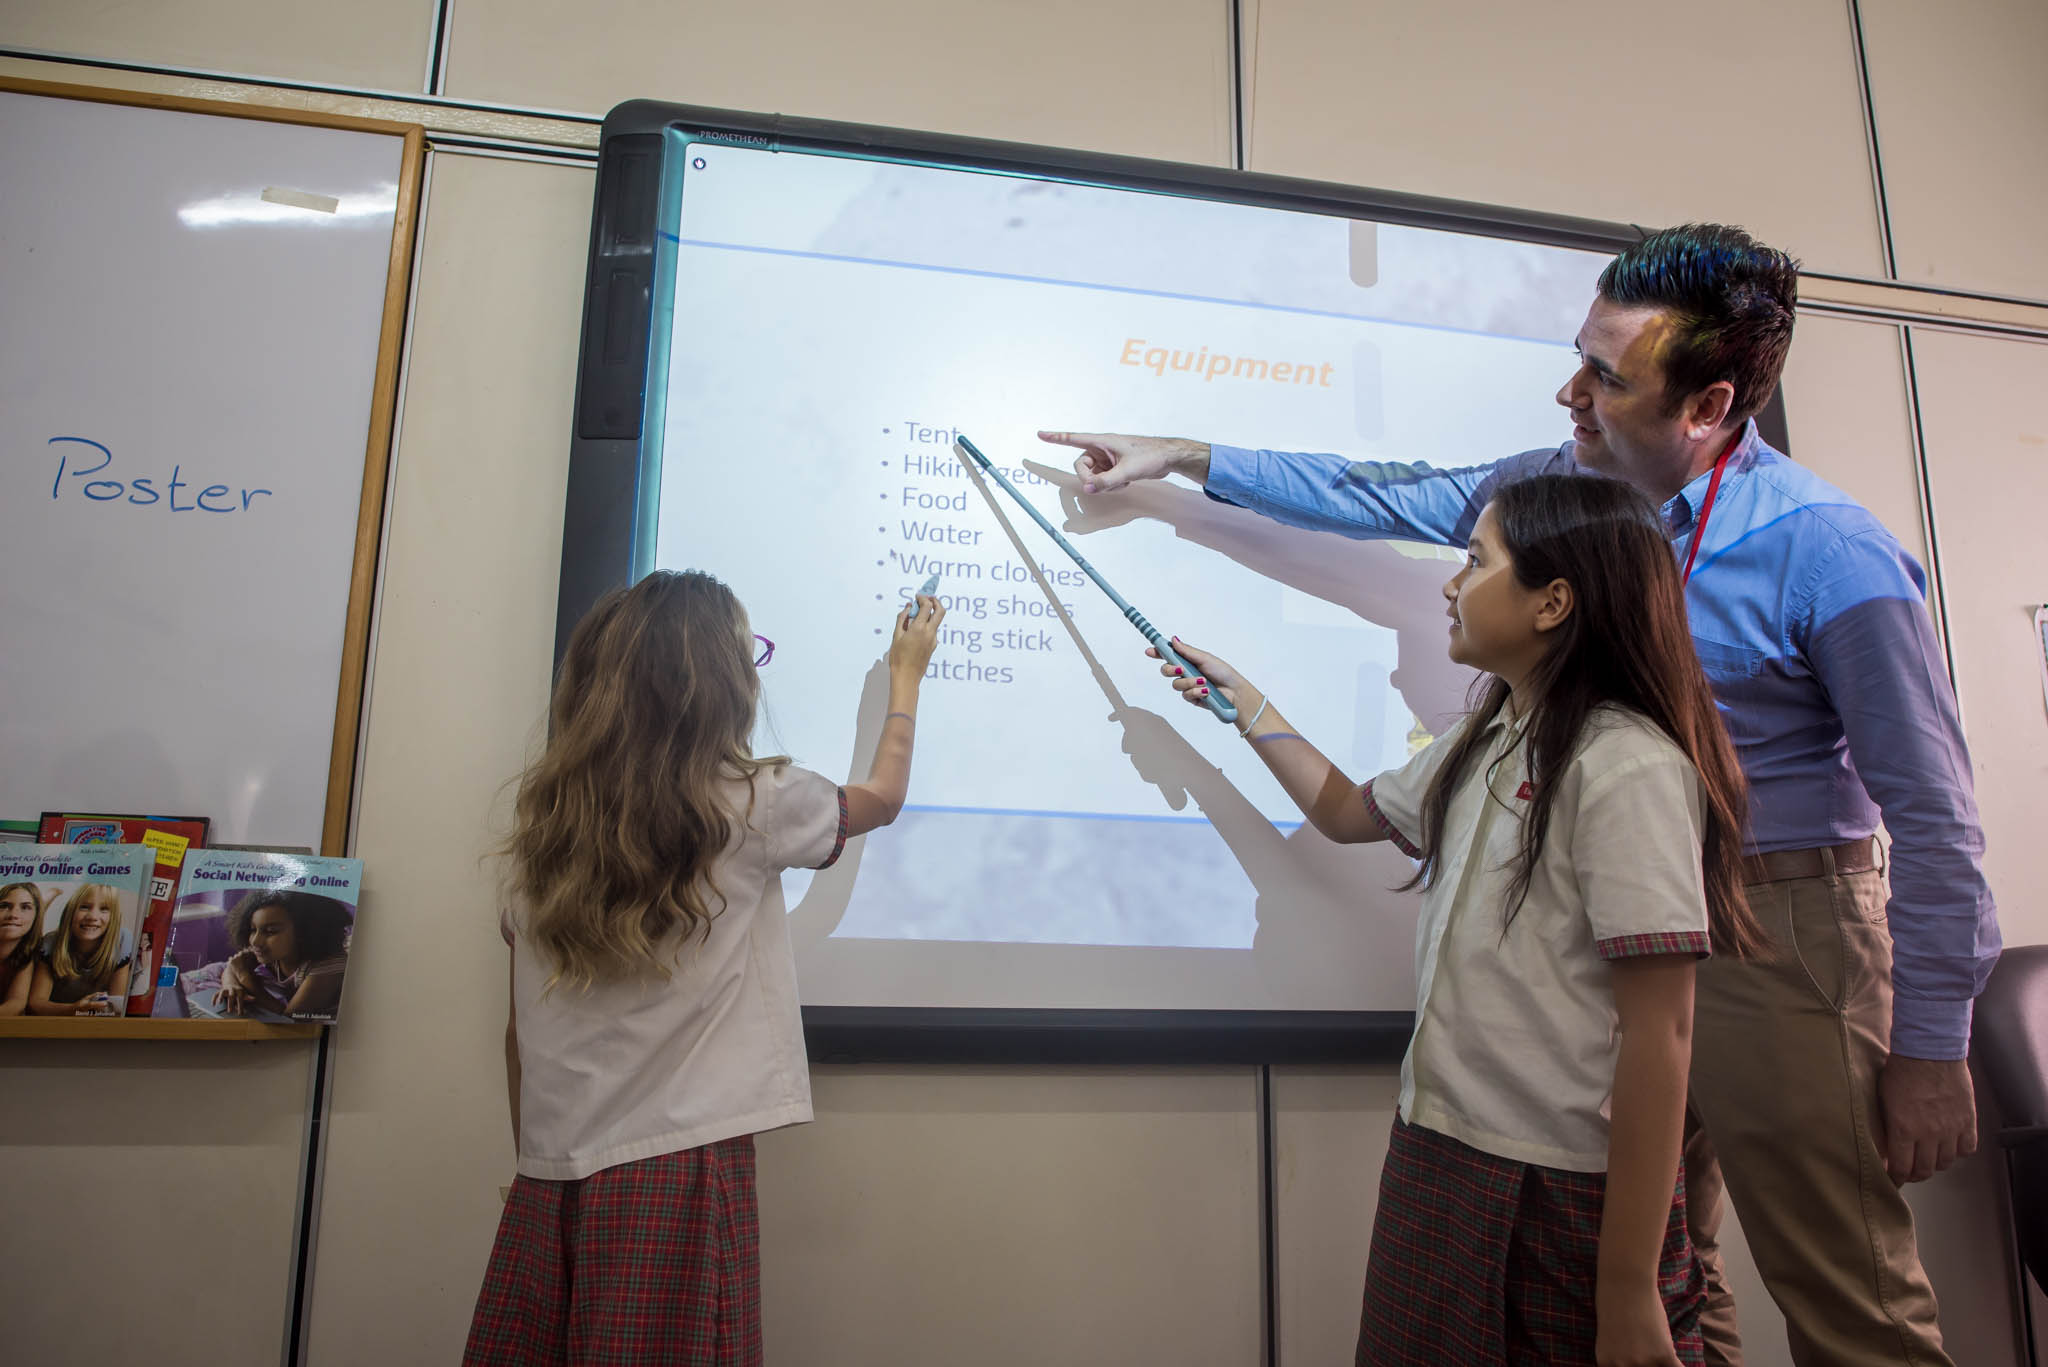 EtonHouse Blog - echnology has transformed the way children learn and communicate in the world today.